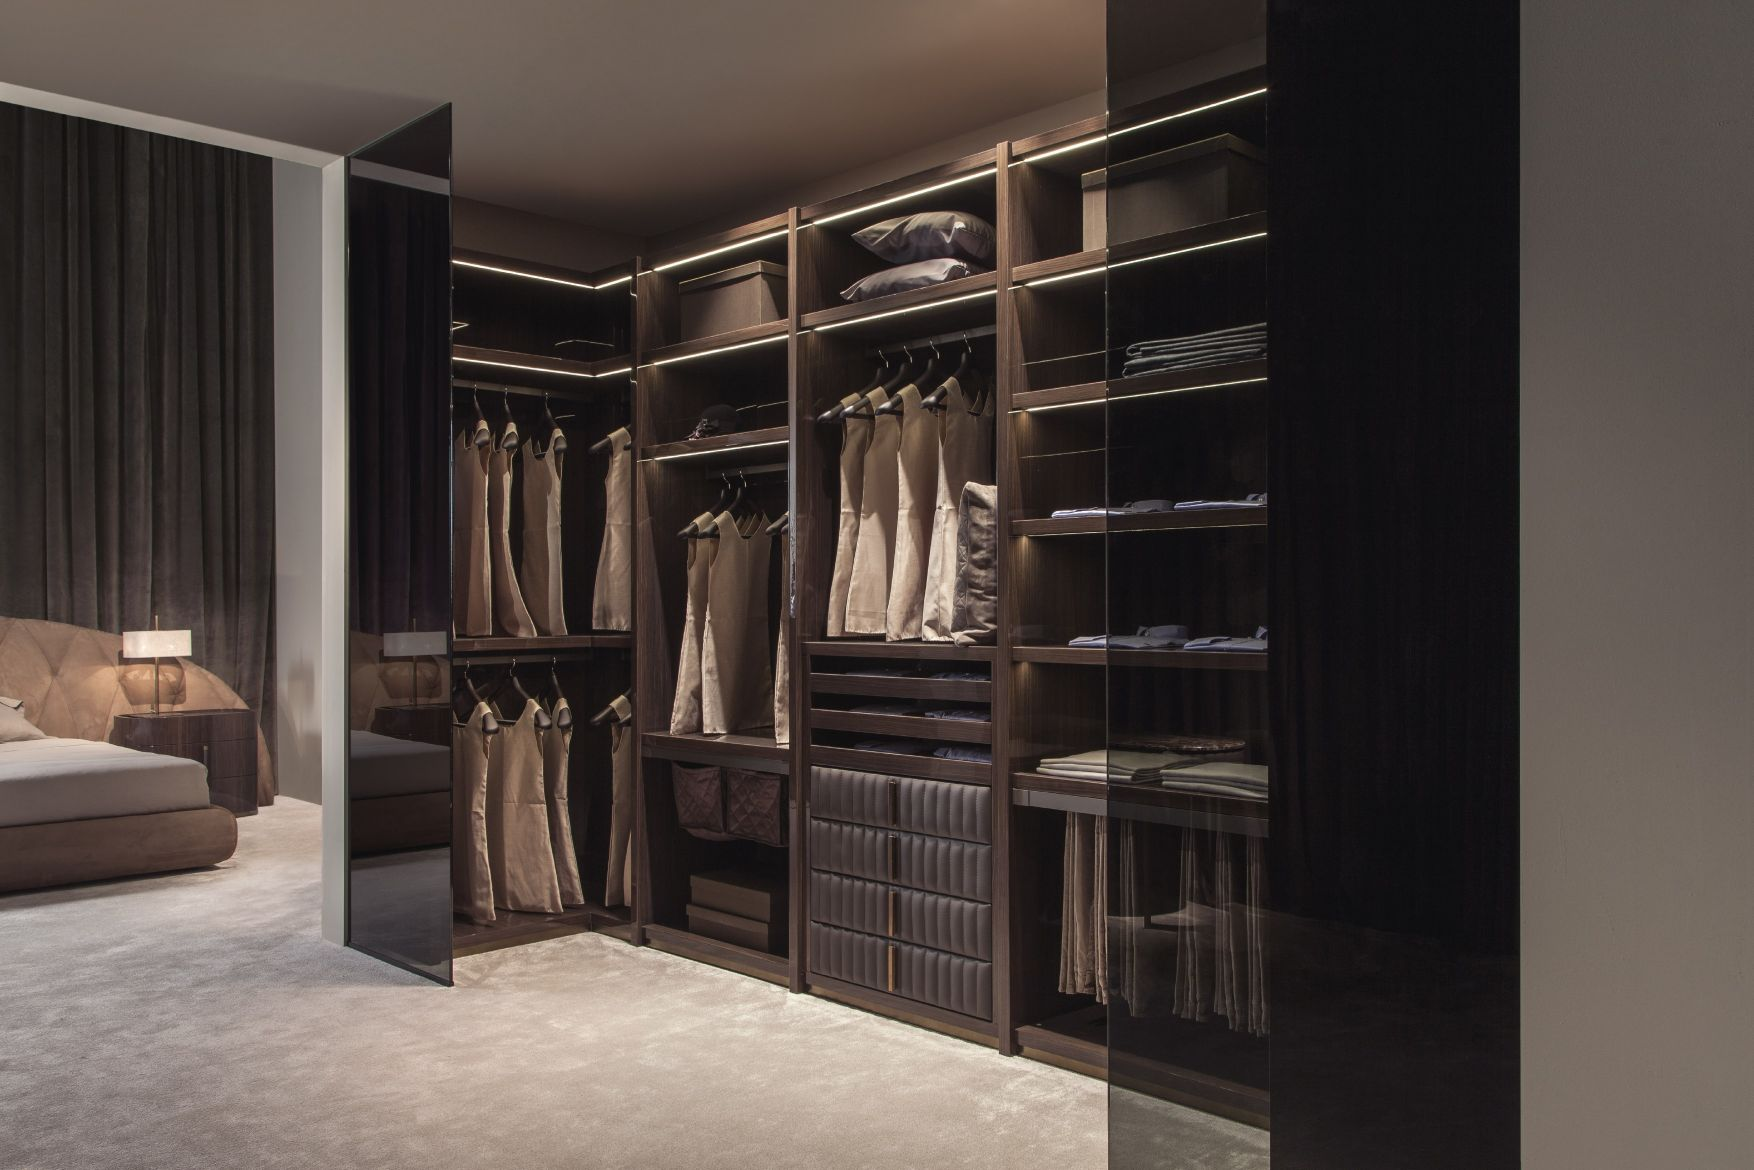 1touched-interiors5touched-d-gloss-canaletto-walnut-amp-leather-walk-in-closet.jpg